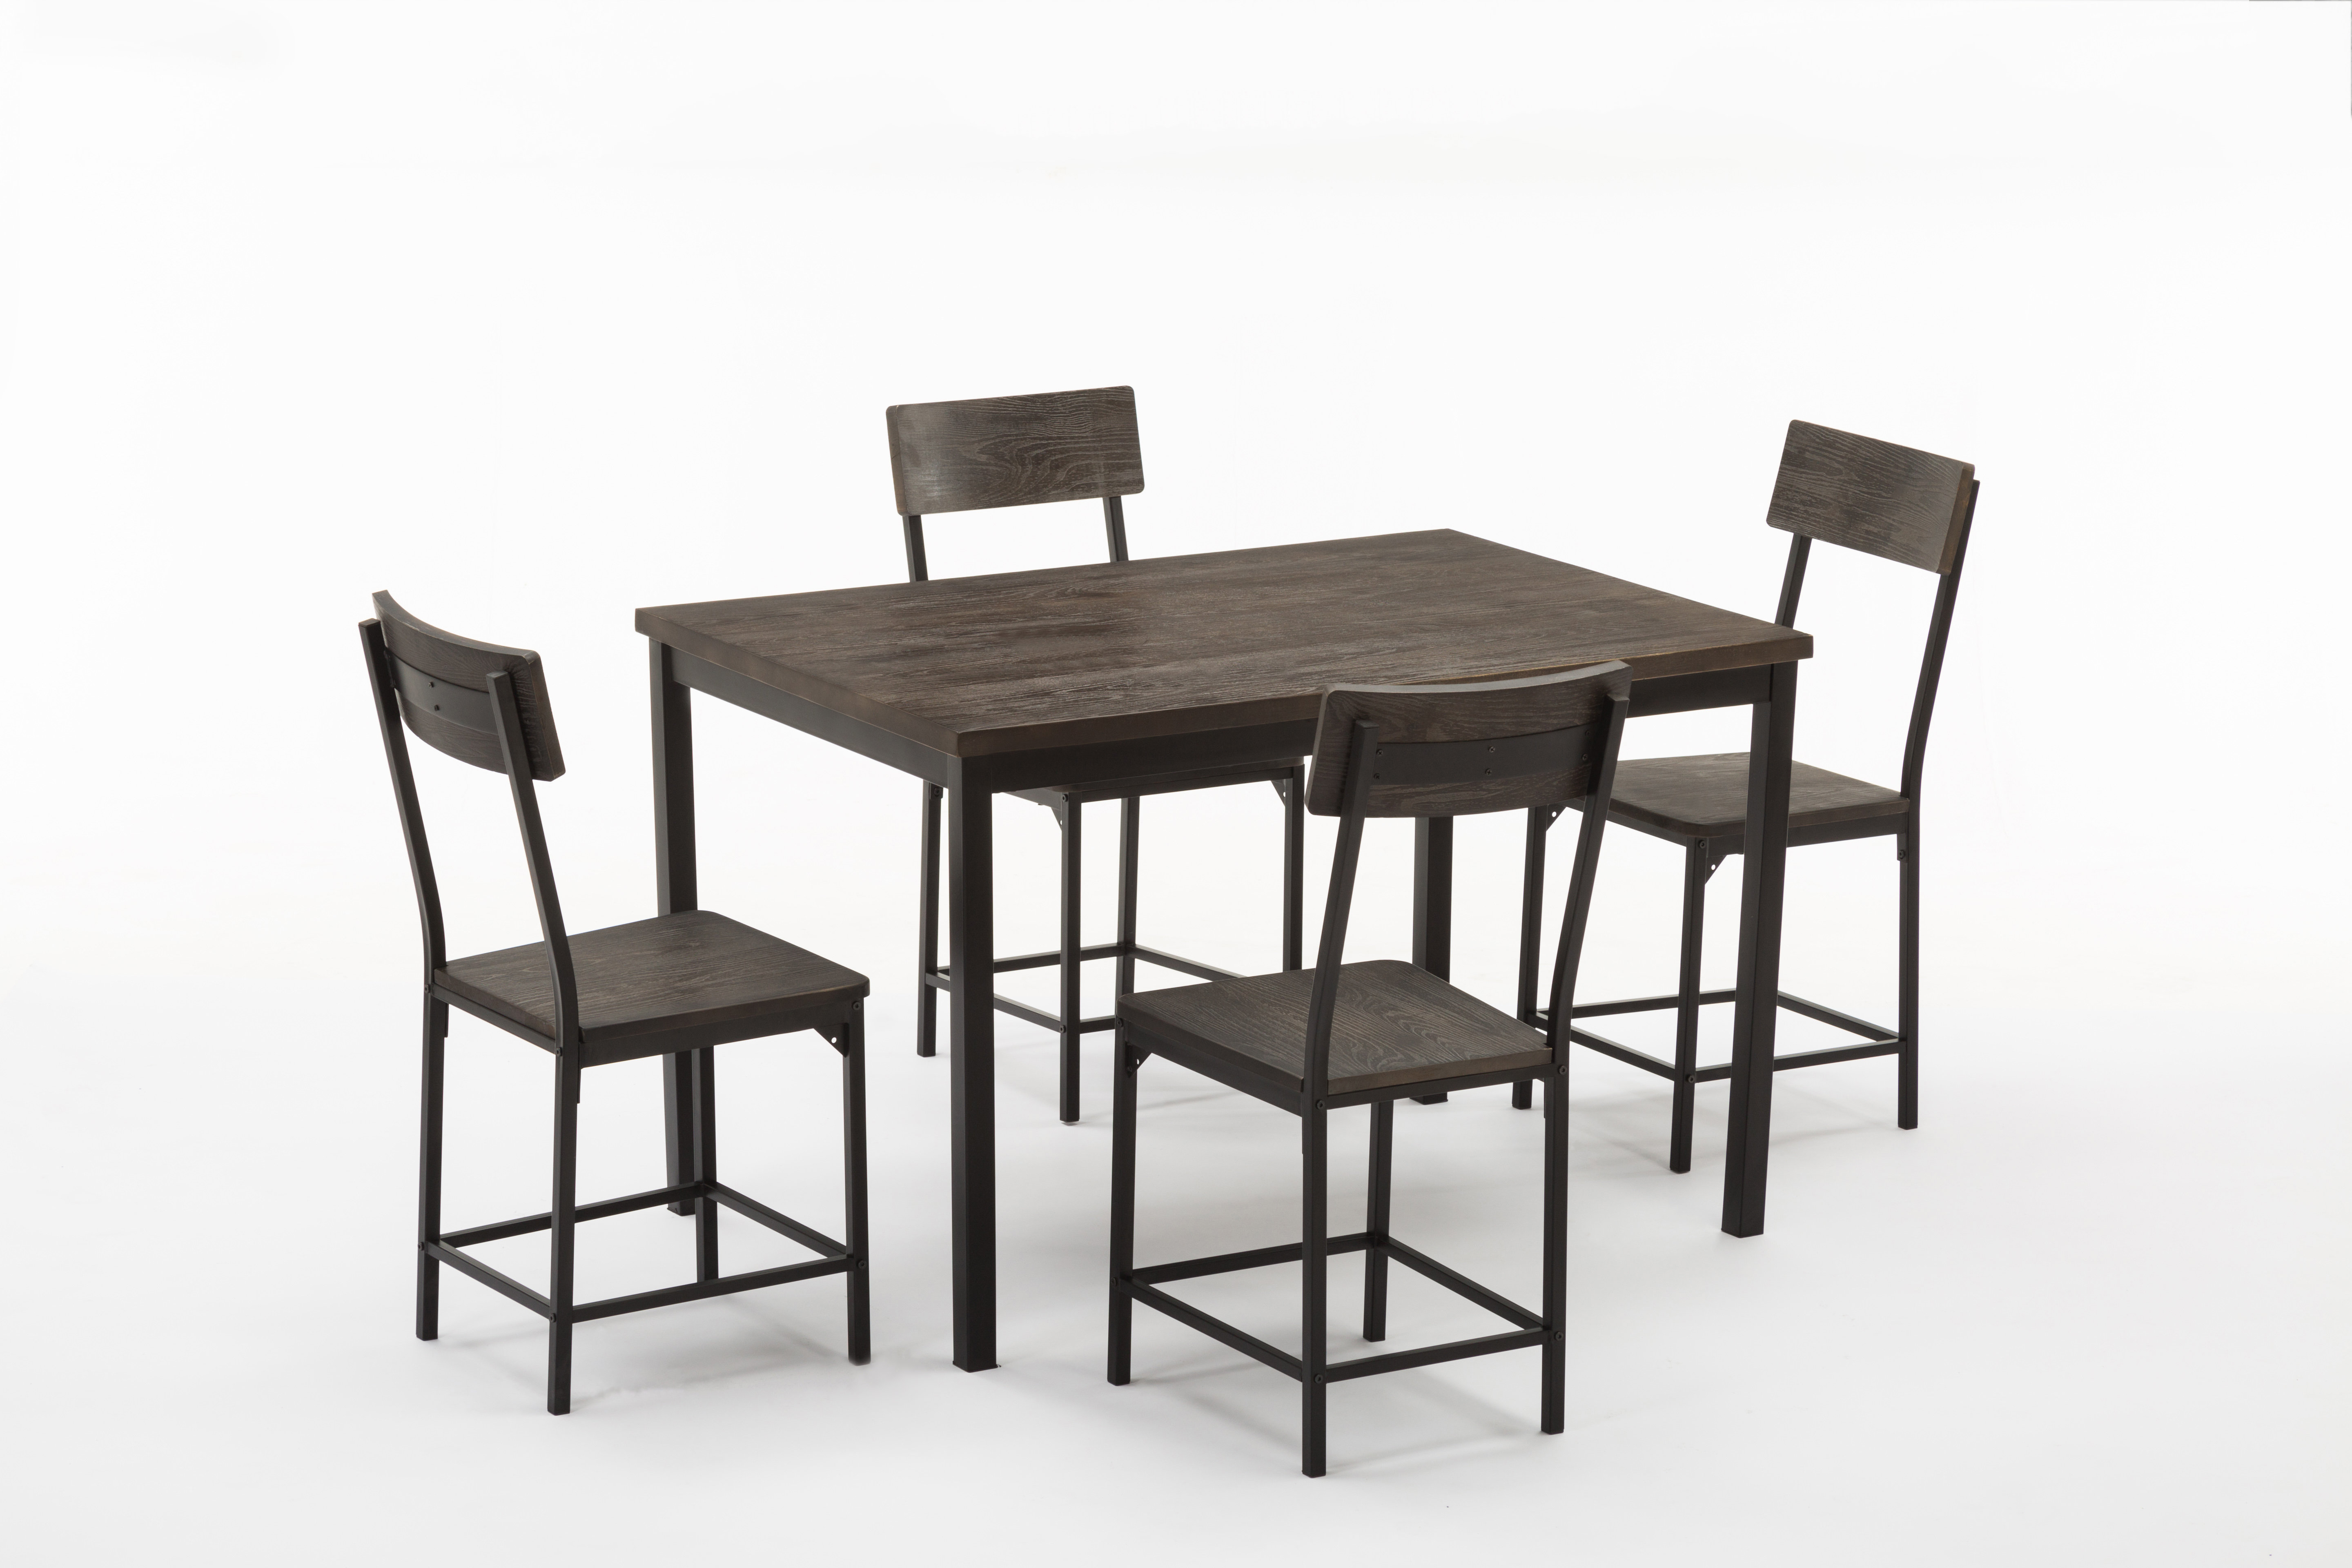 Allmodern With Best And Newest Bryson 5 Piece Dining Sets (View 18 of 20)